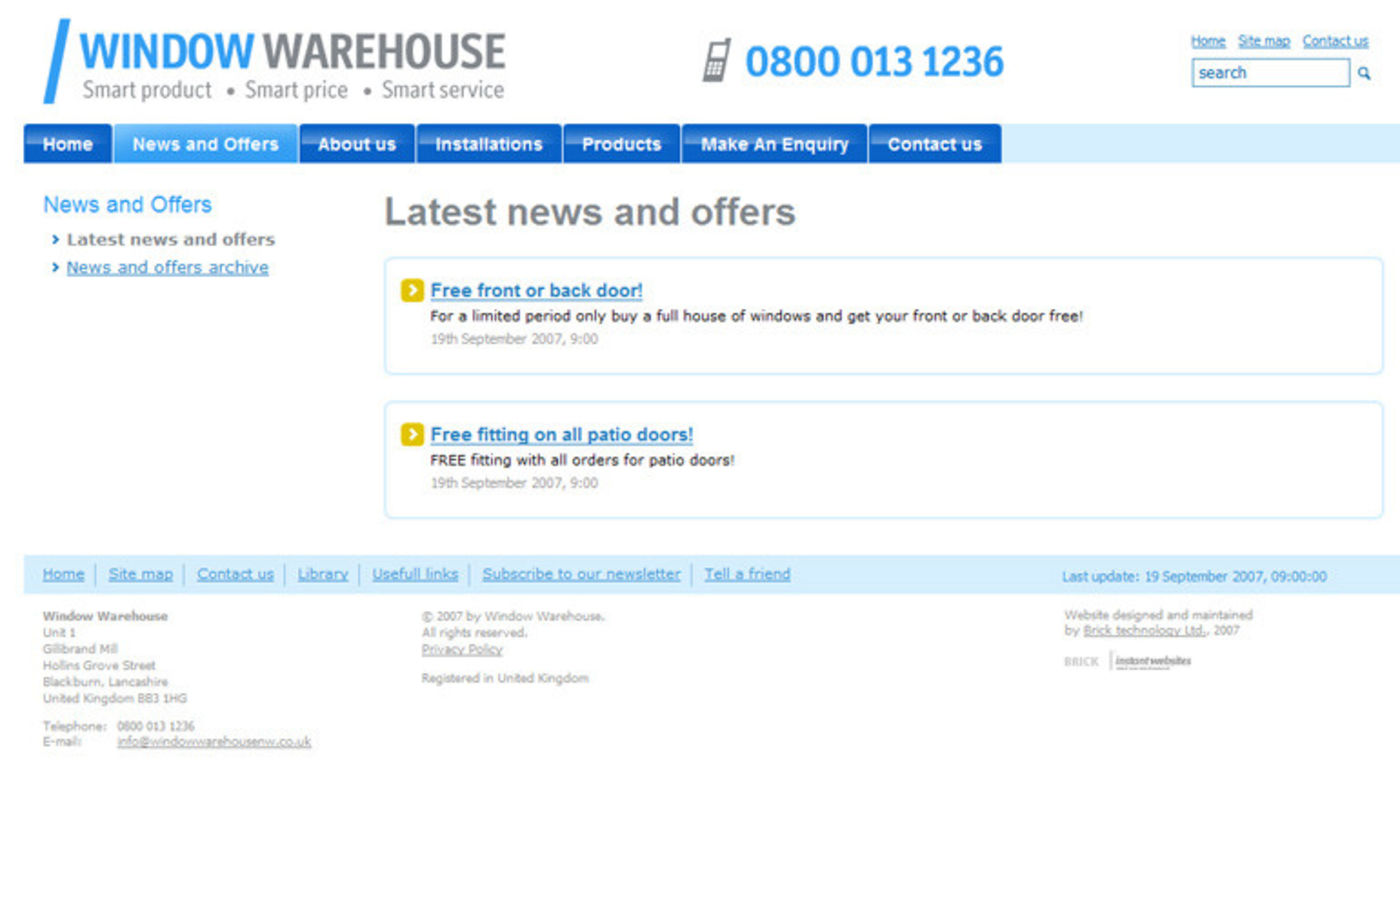 Window Warehouse Latest news and offers